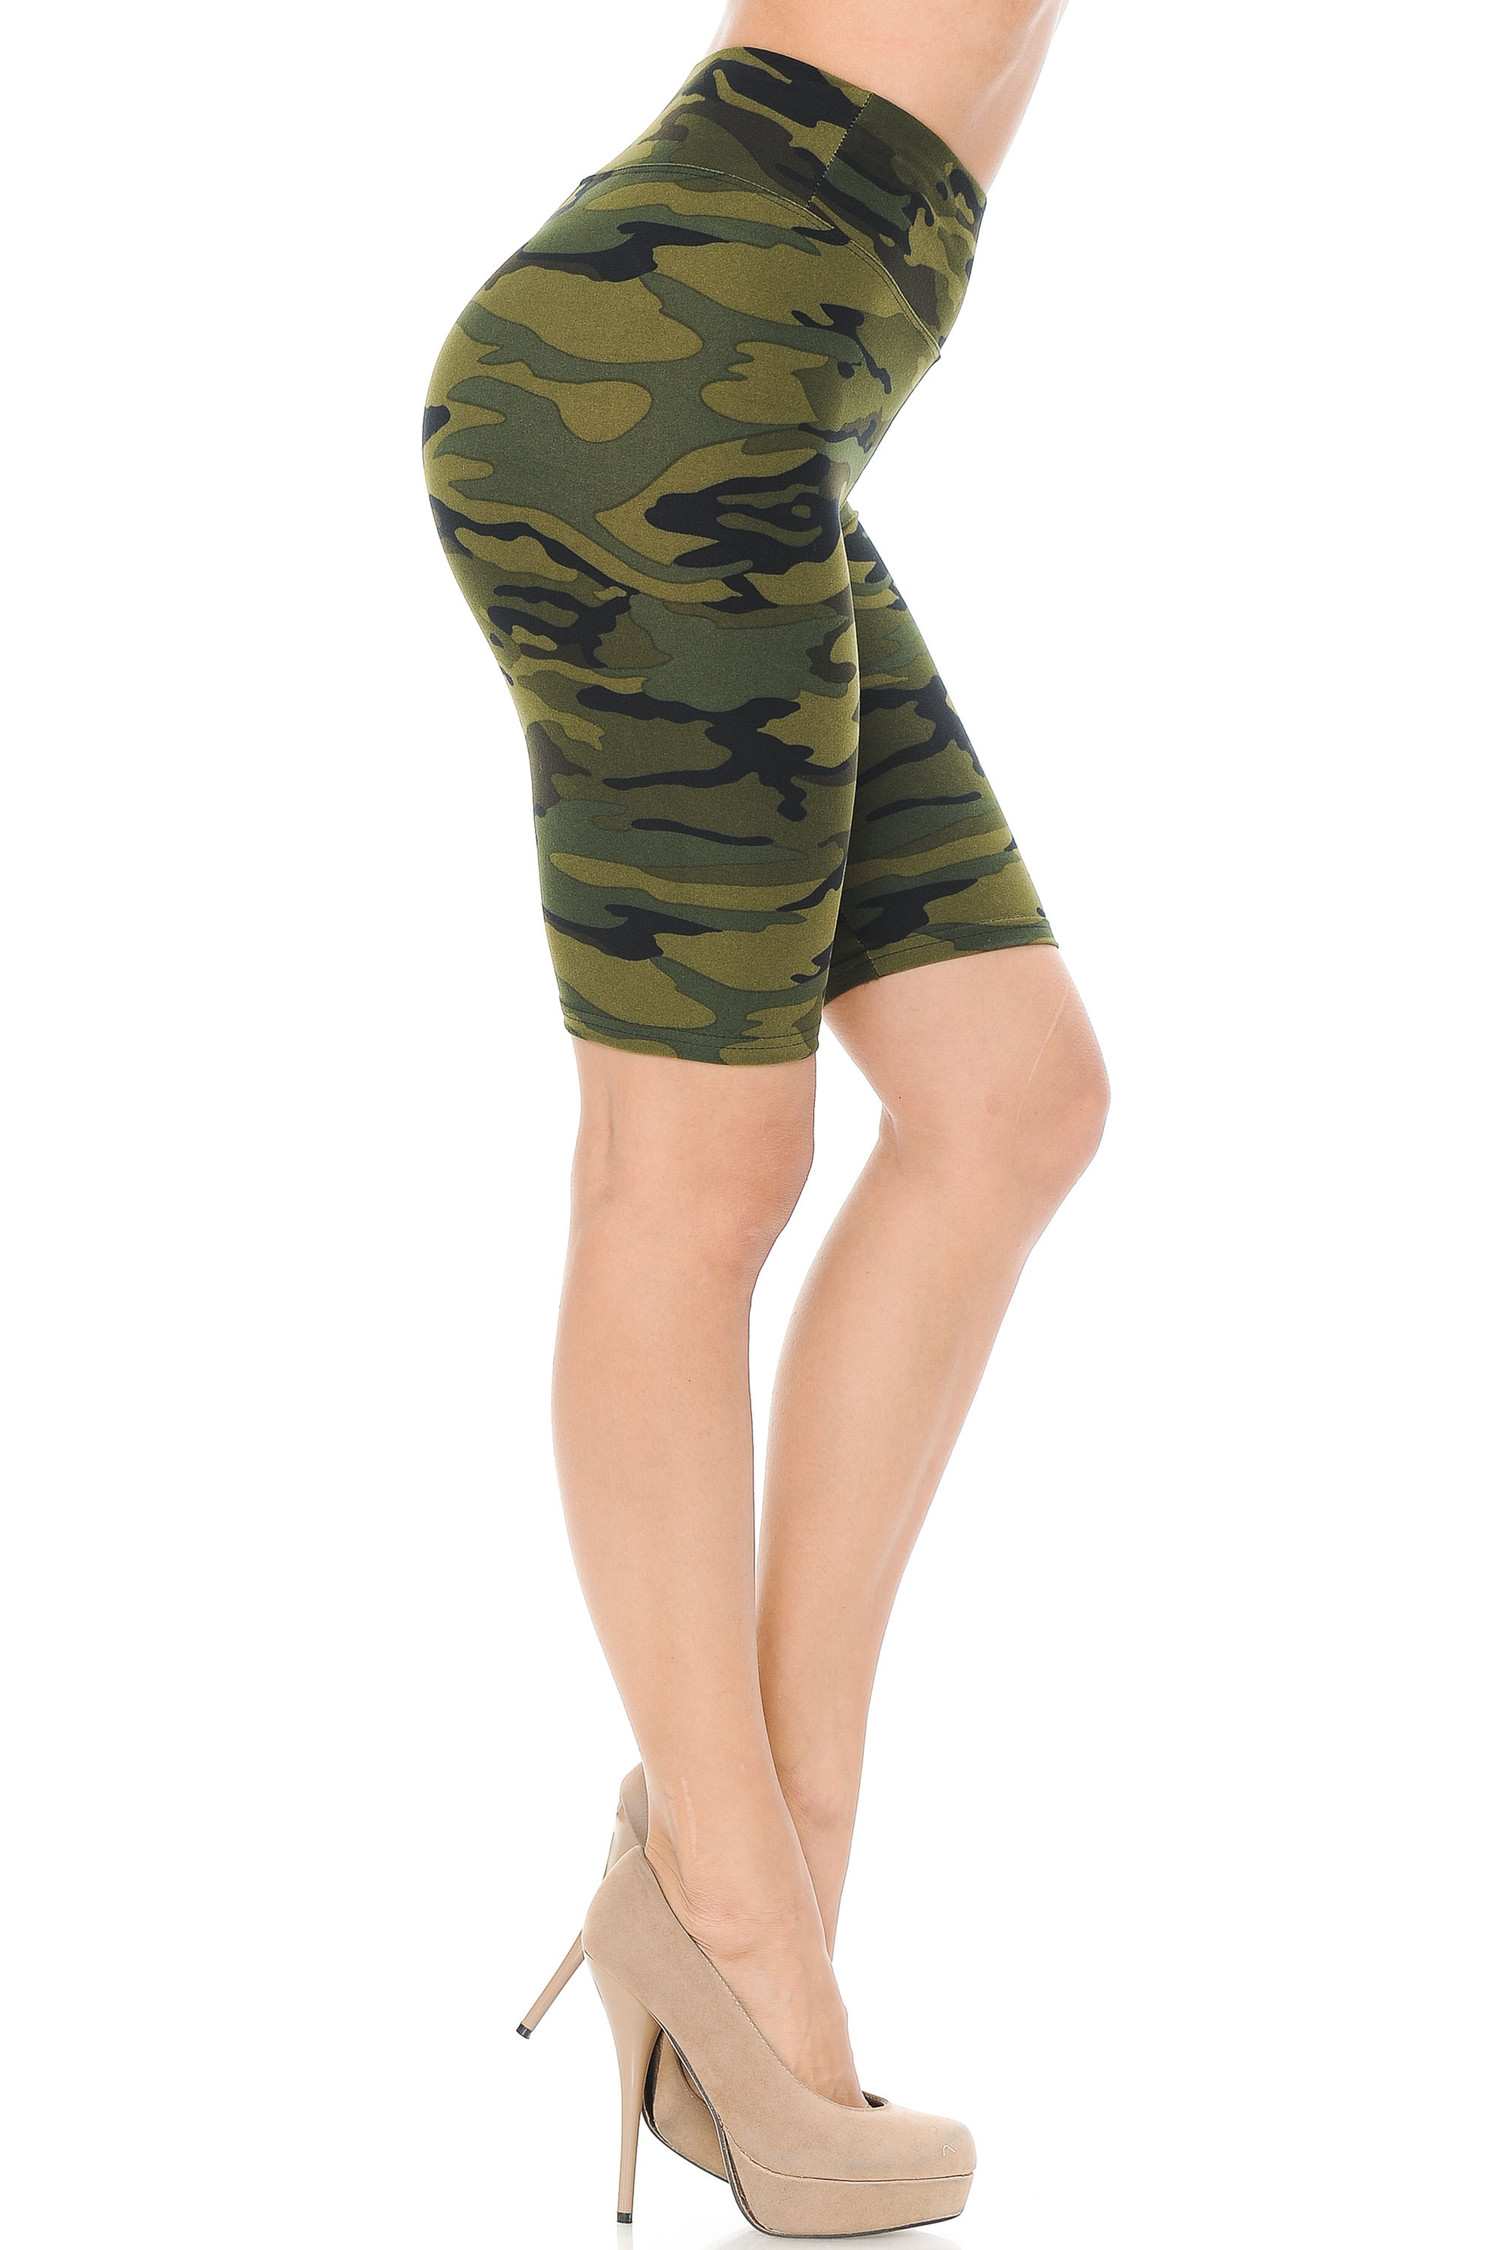 Brushed  Green Camouflage Shorts - 3 Inch Waist Band